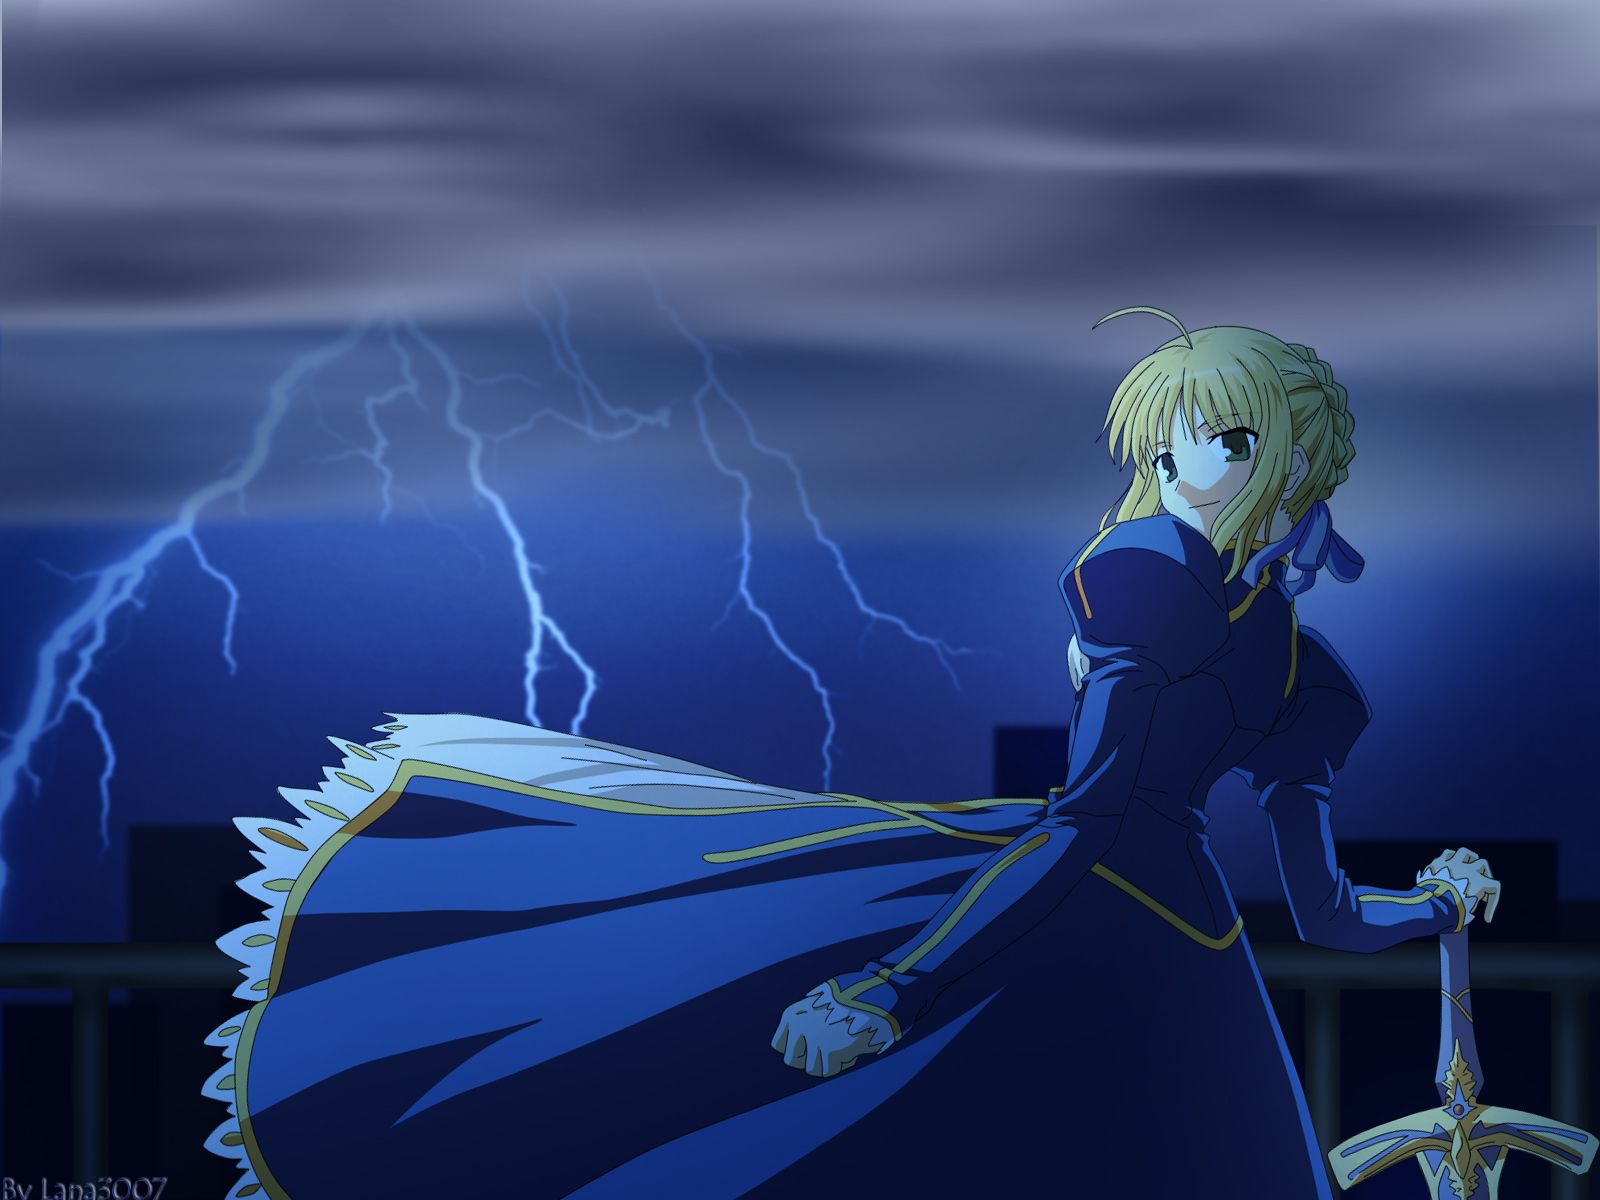 [AnimePaper]wallpapers_Fate-Stay-Night_lana3007_15192